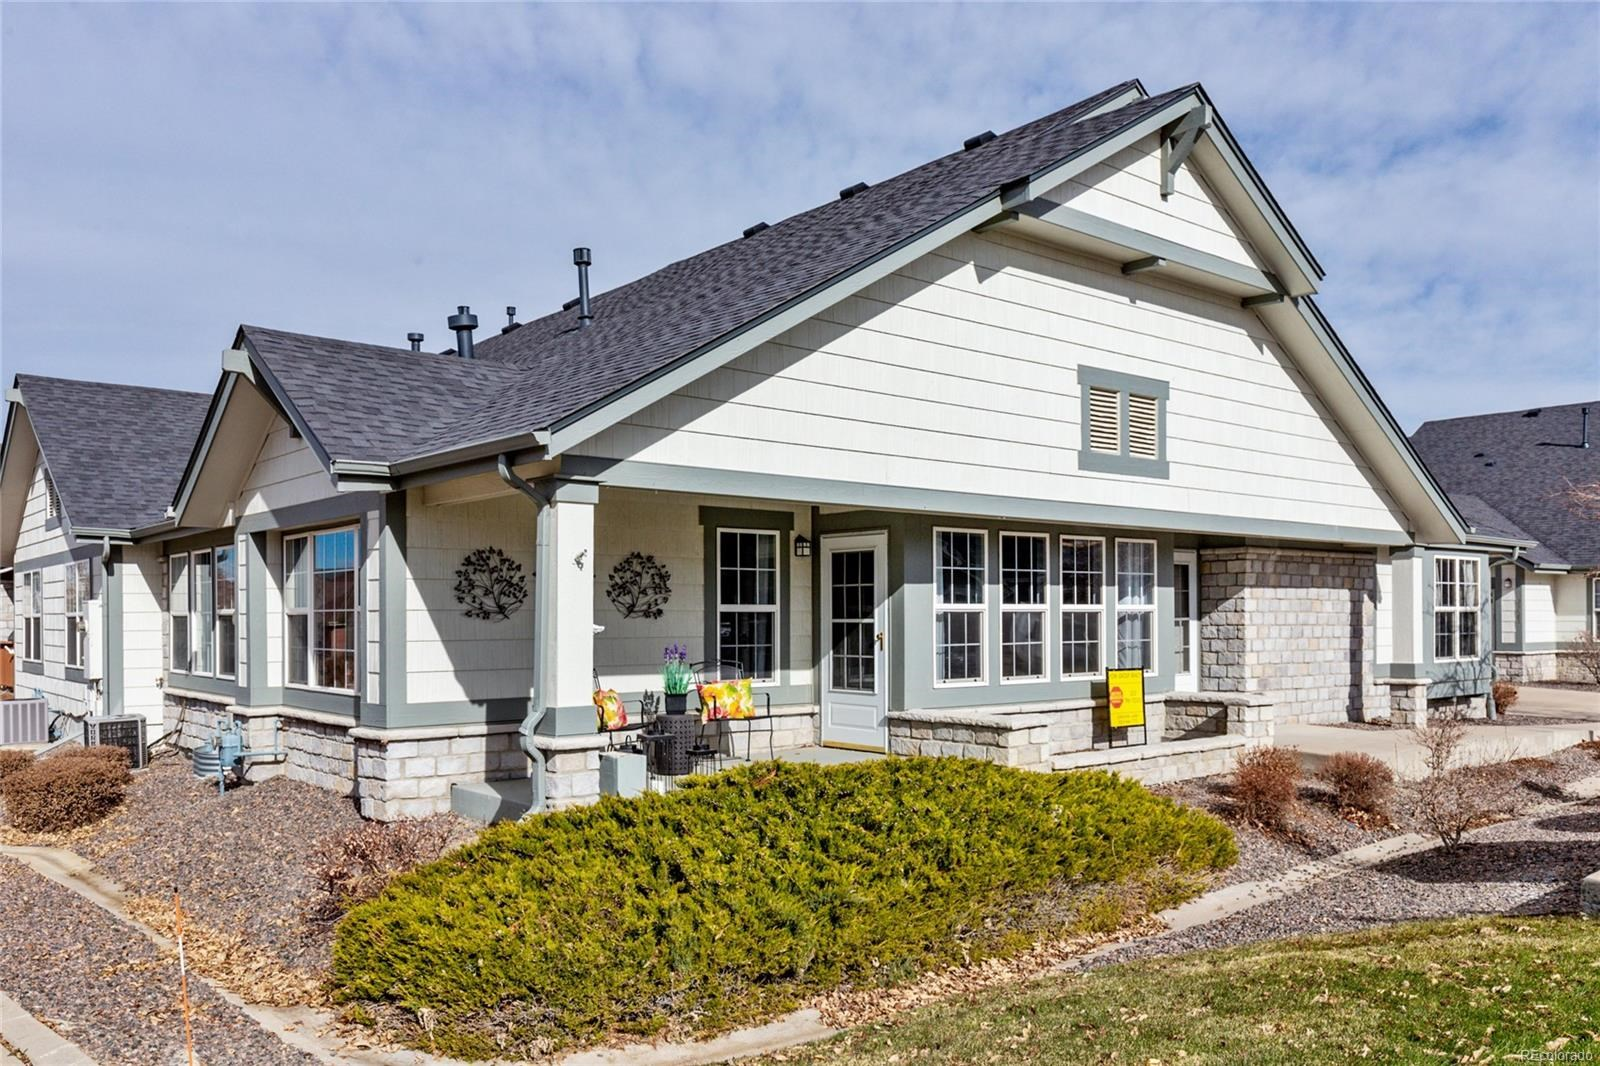 MLS# 8564231 - 1 - 23633 E Links Place, Aurora, CO 80016